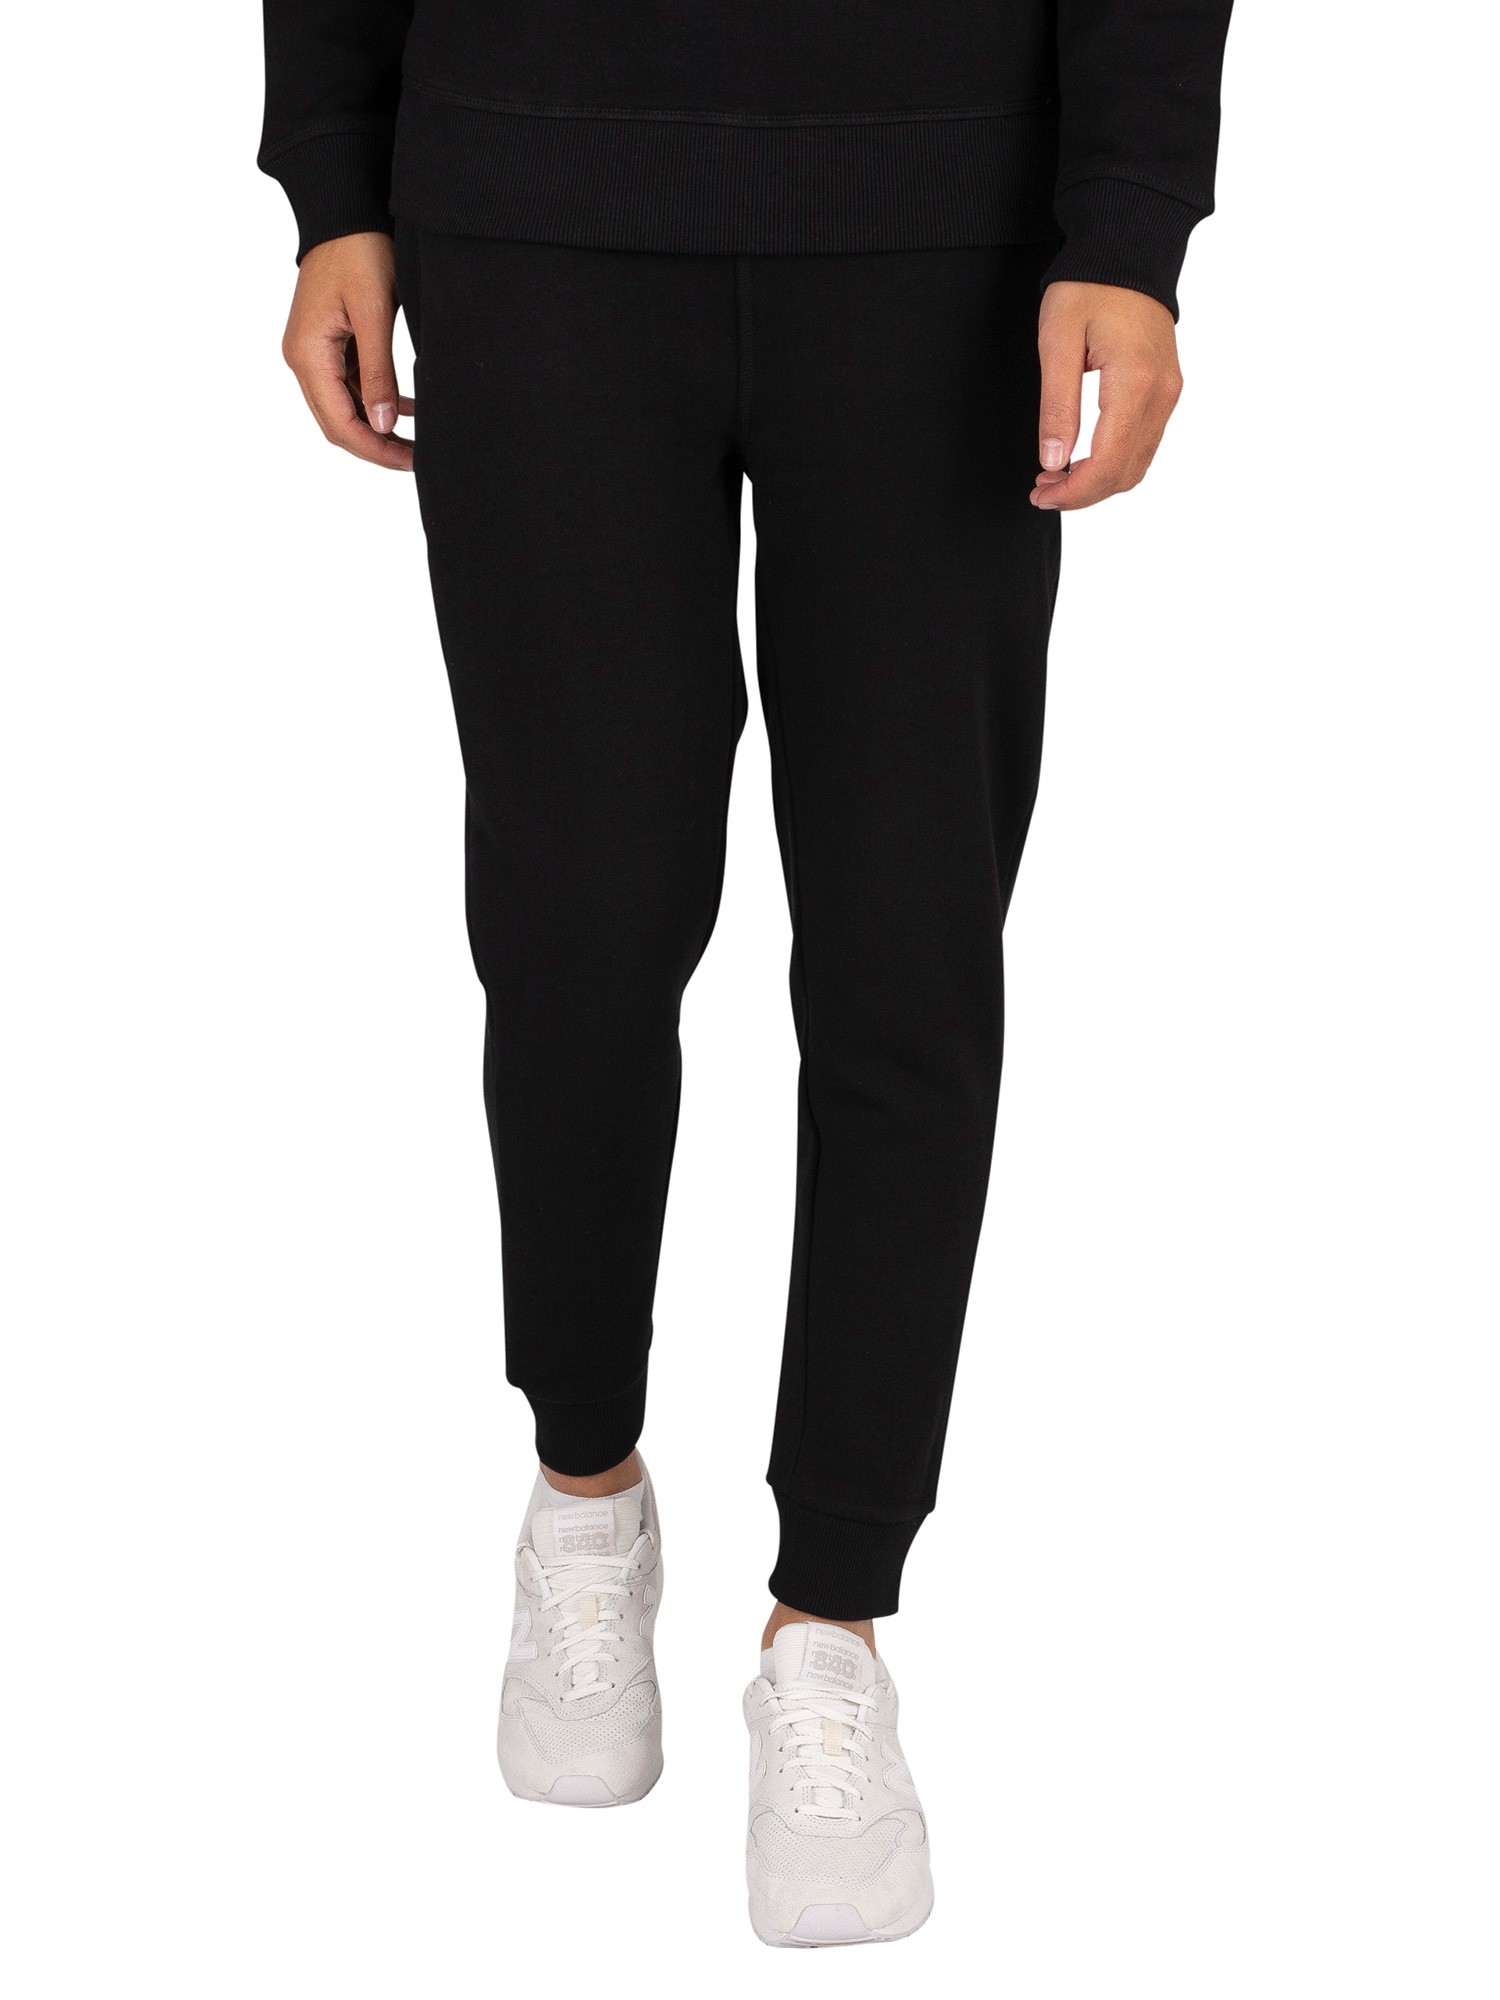 Henry-Griffiths-Joggers